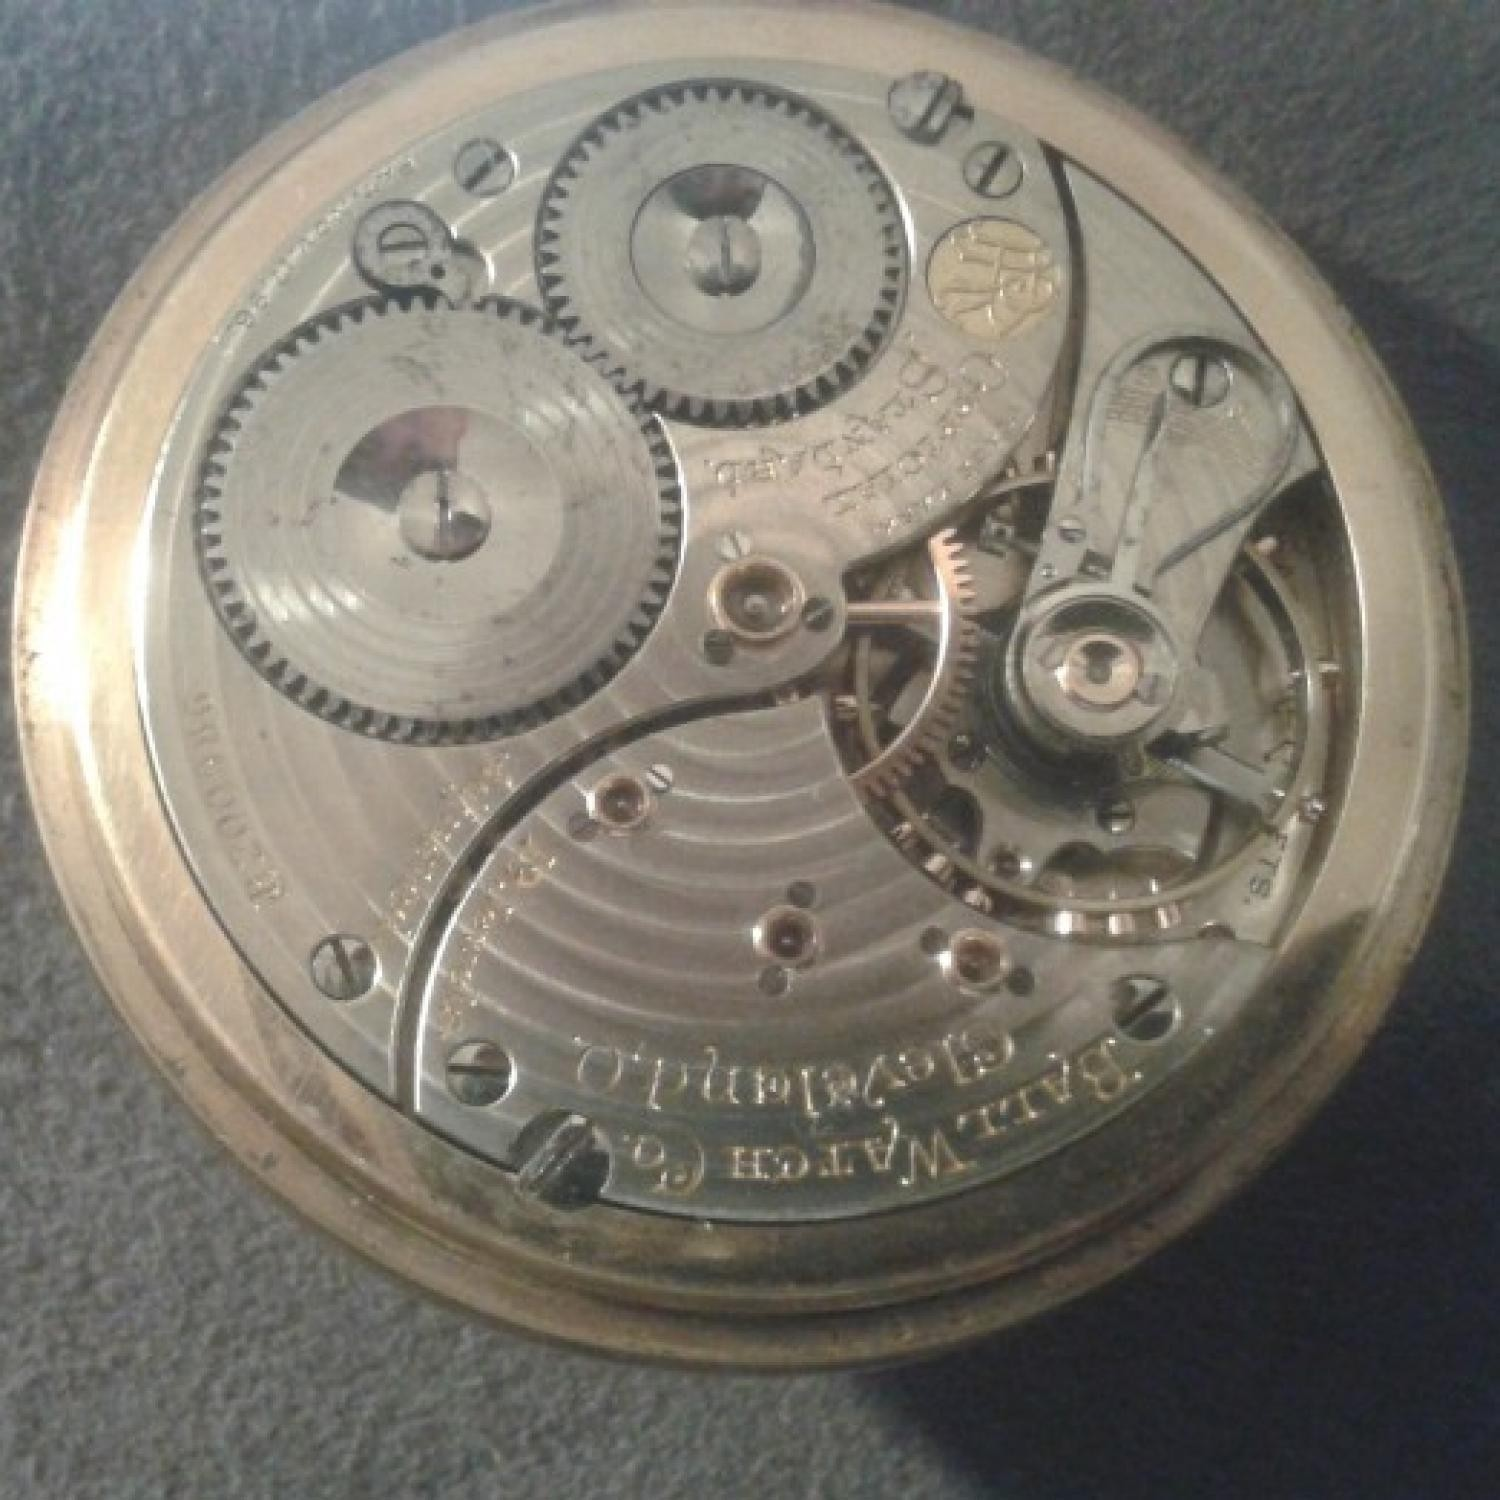 Image of Ball - Waltham Commercial Standard #B200986 Movement